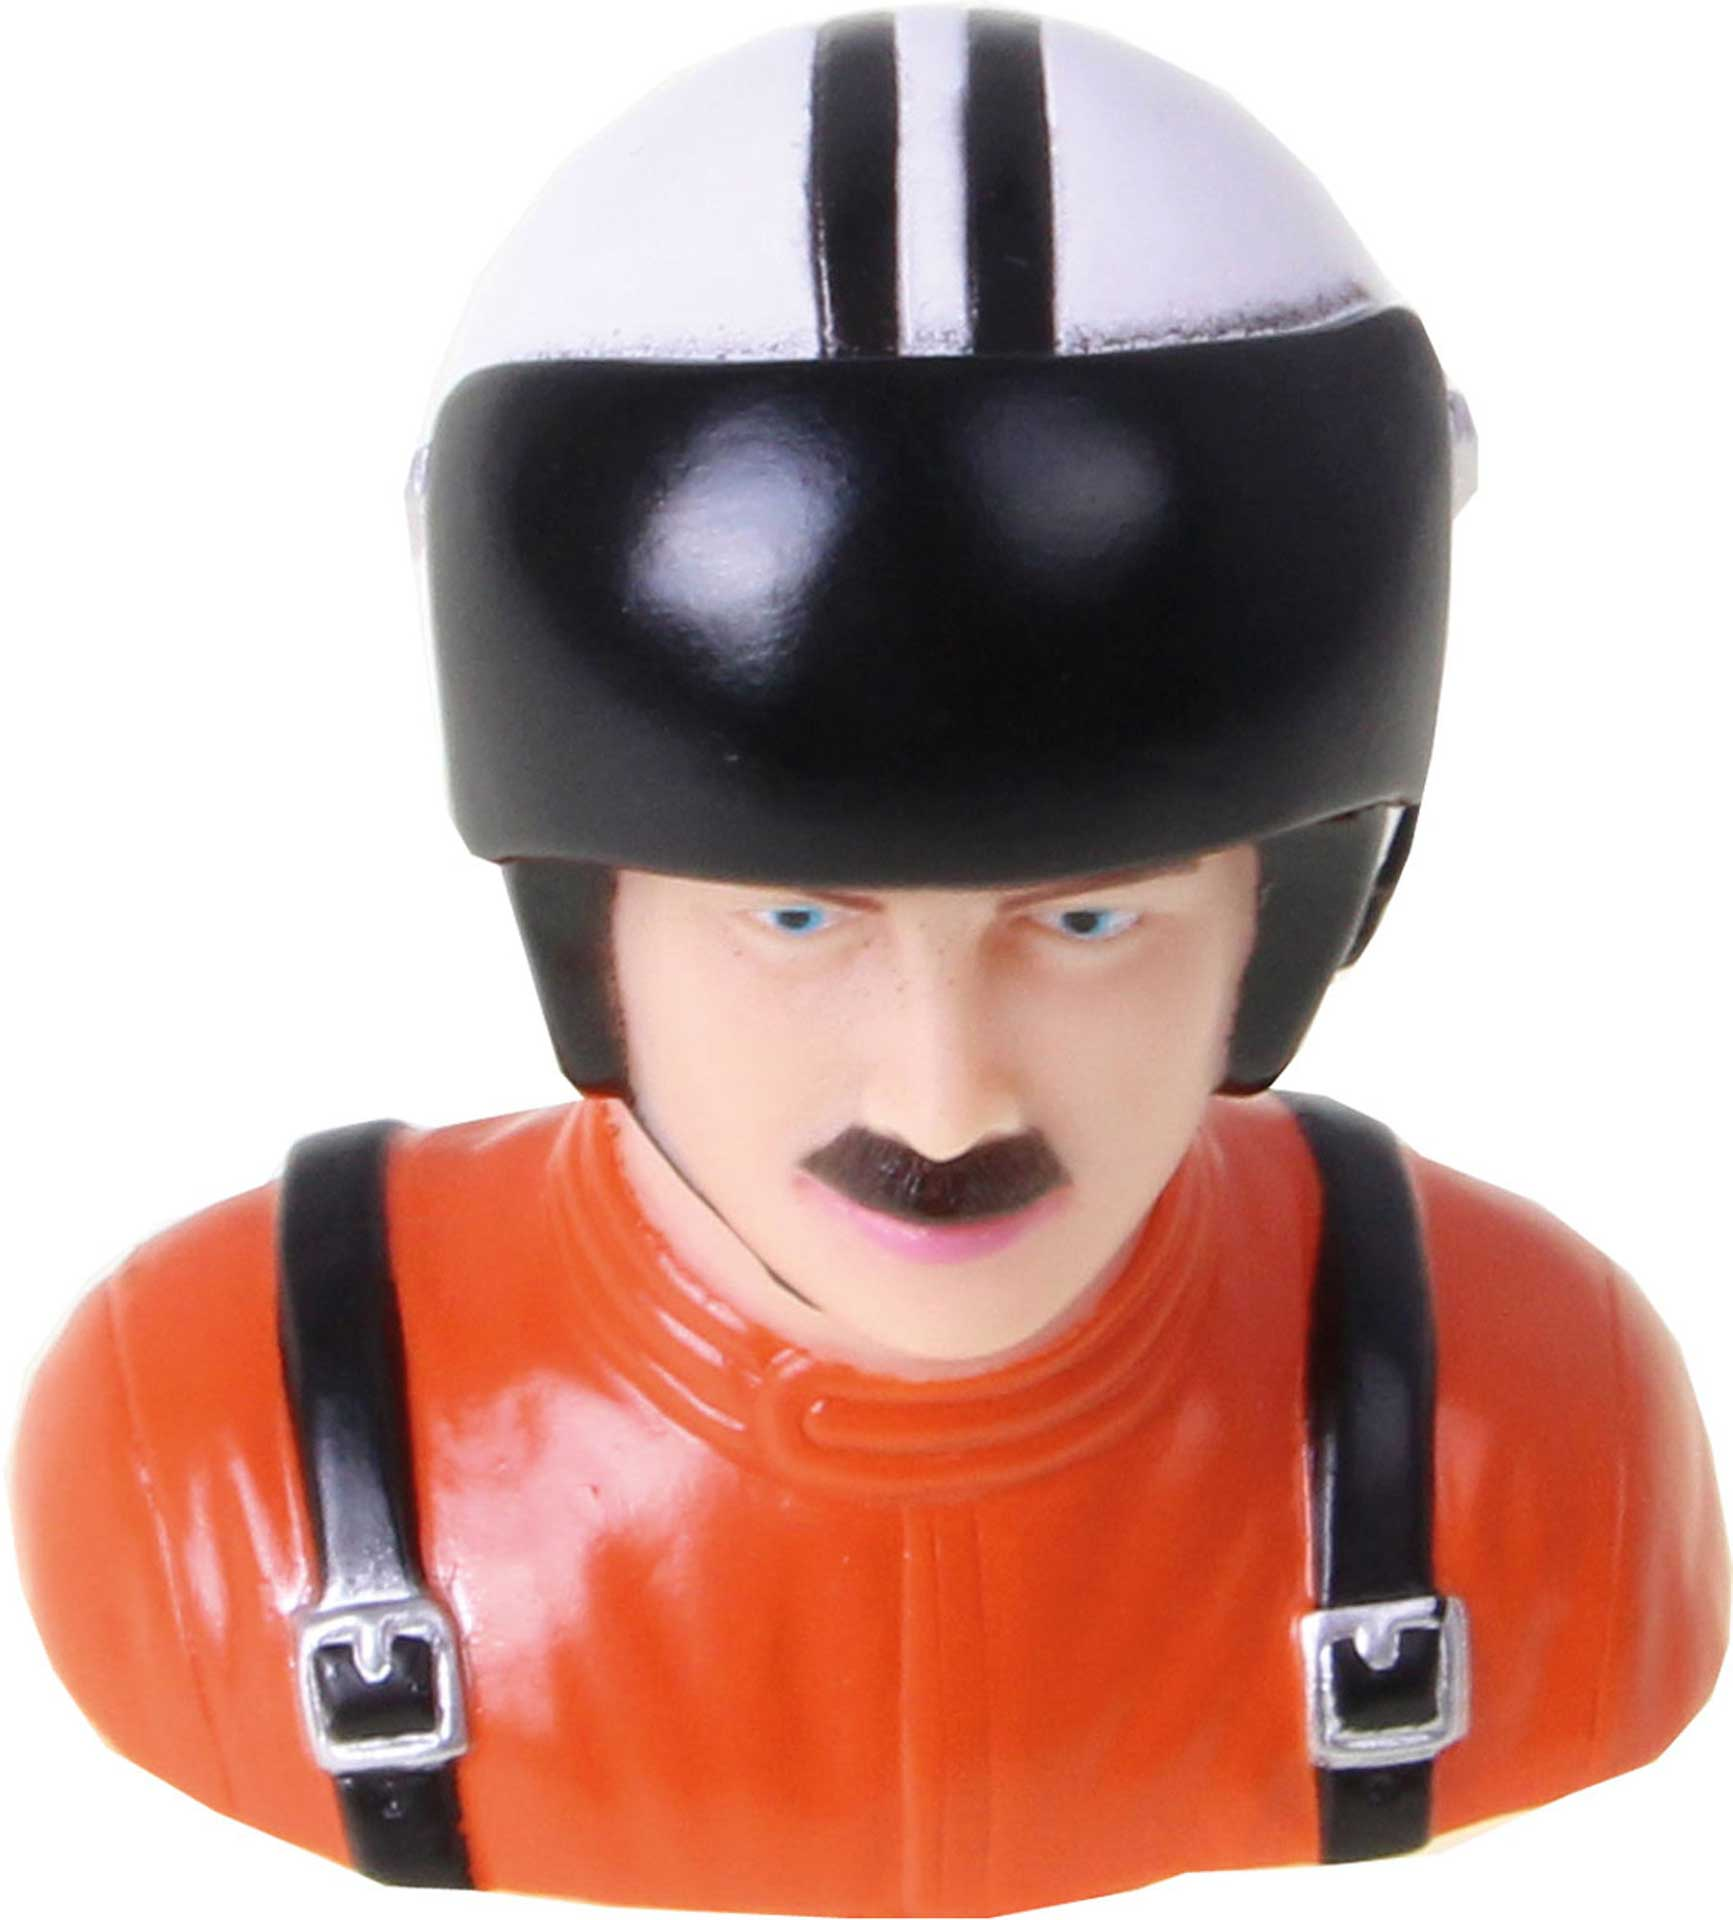 MODELLBAU LINDINGER PILOT CIVIL 1:6 66/43/70MM ORANGE